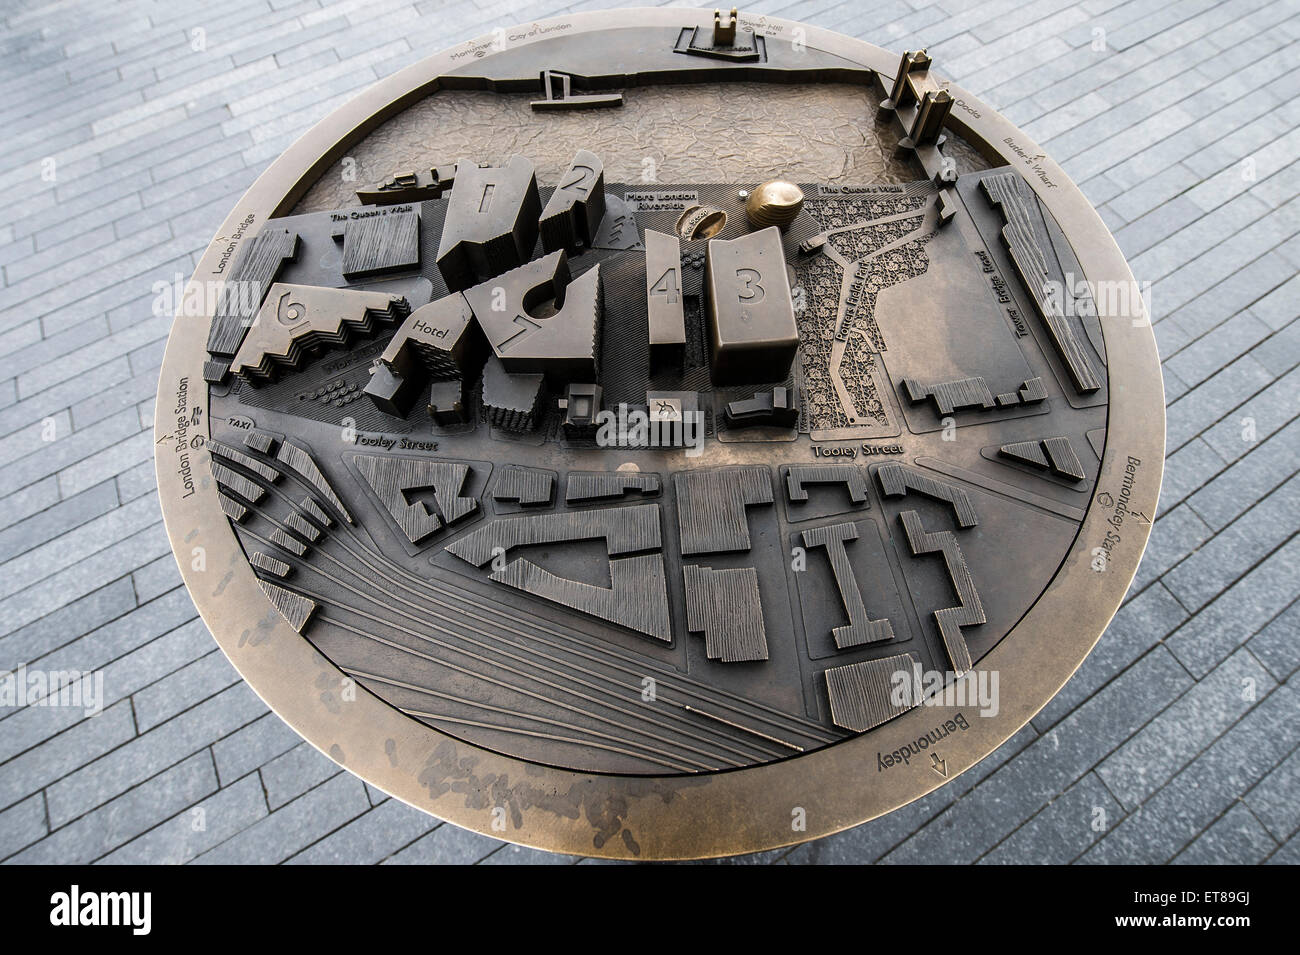 Brass 3D map of the surrounding area of more London and the River Thames - Stock Image